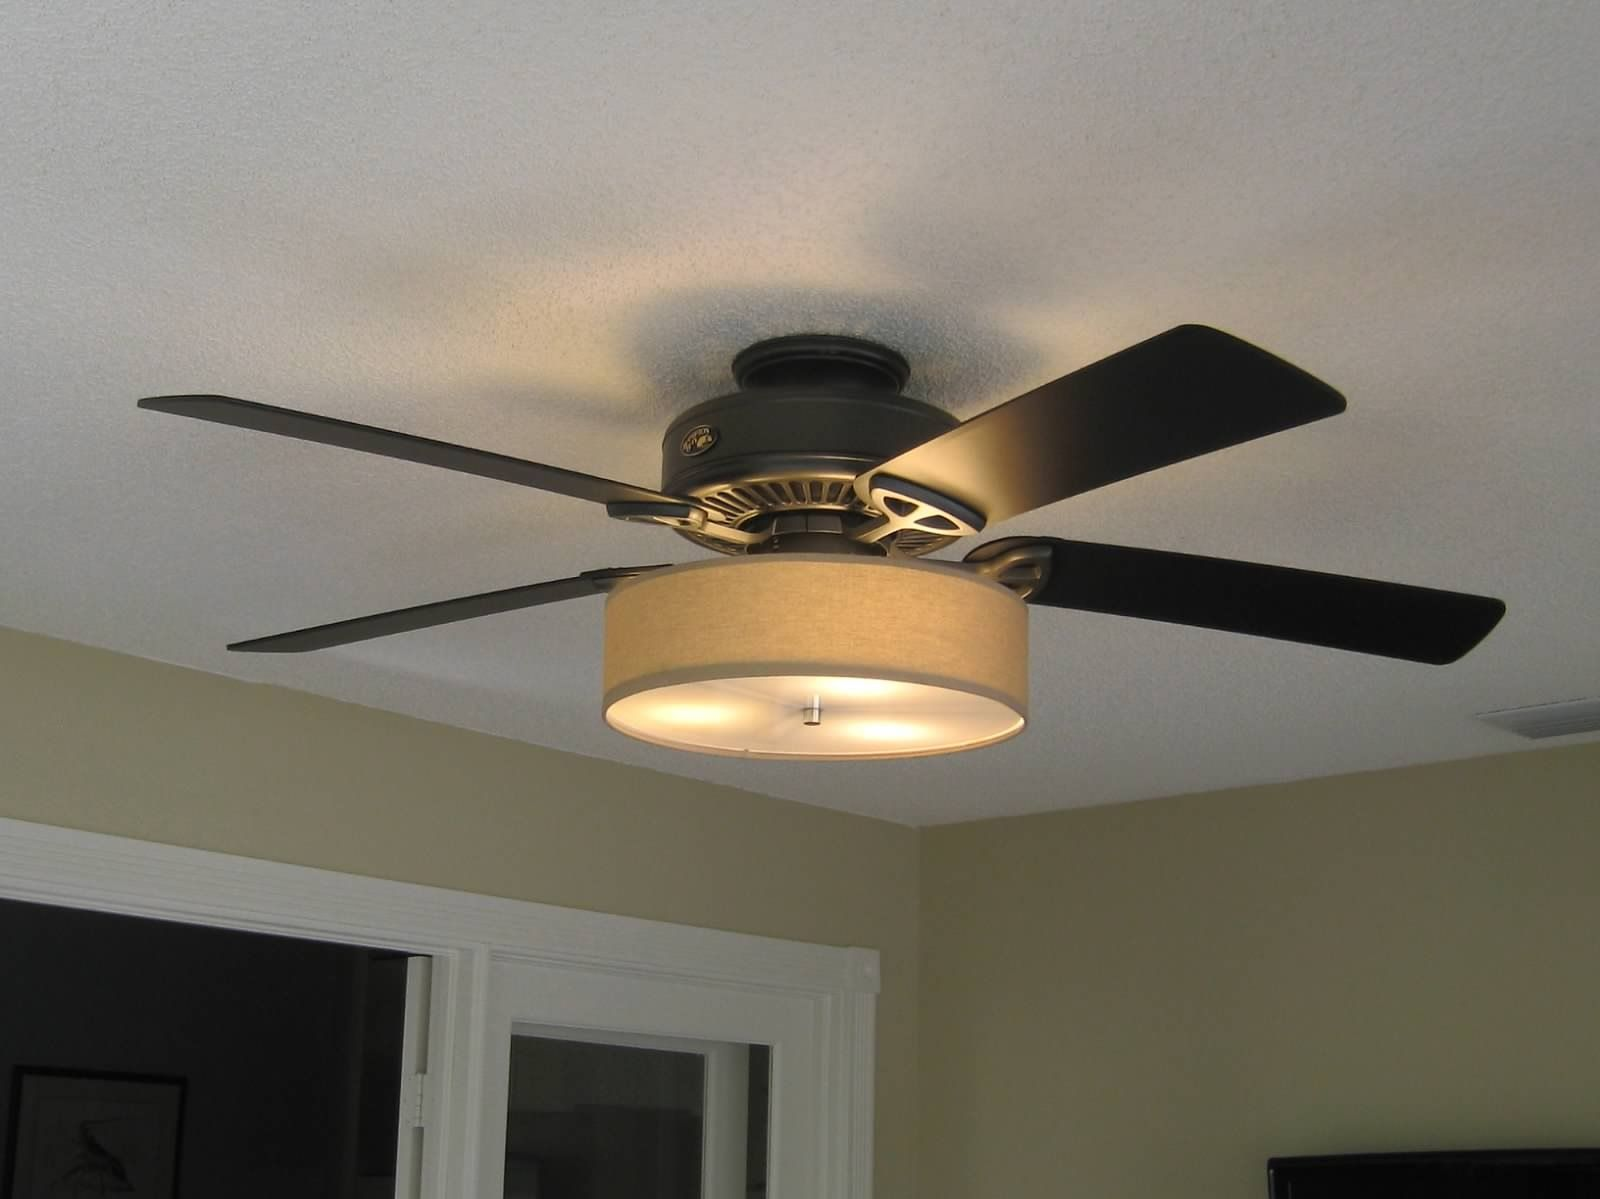 Best 25 Fan lights ideas on Pinterest Ceiling fan lights